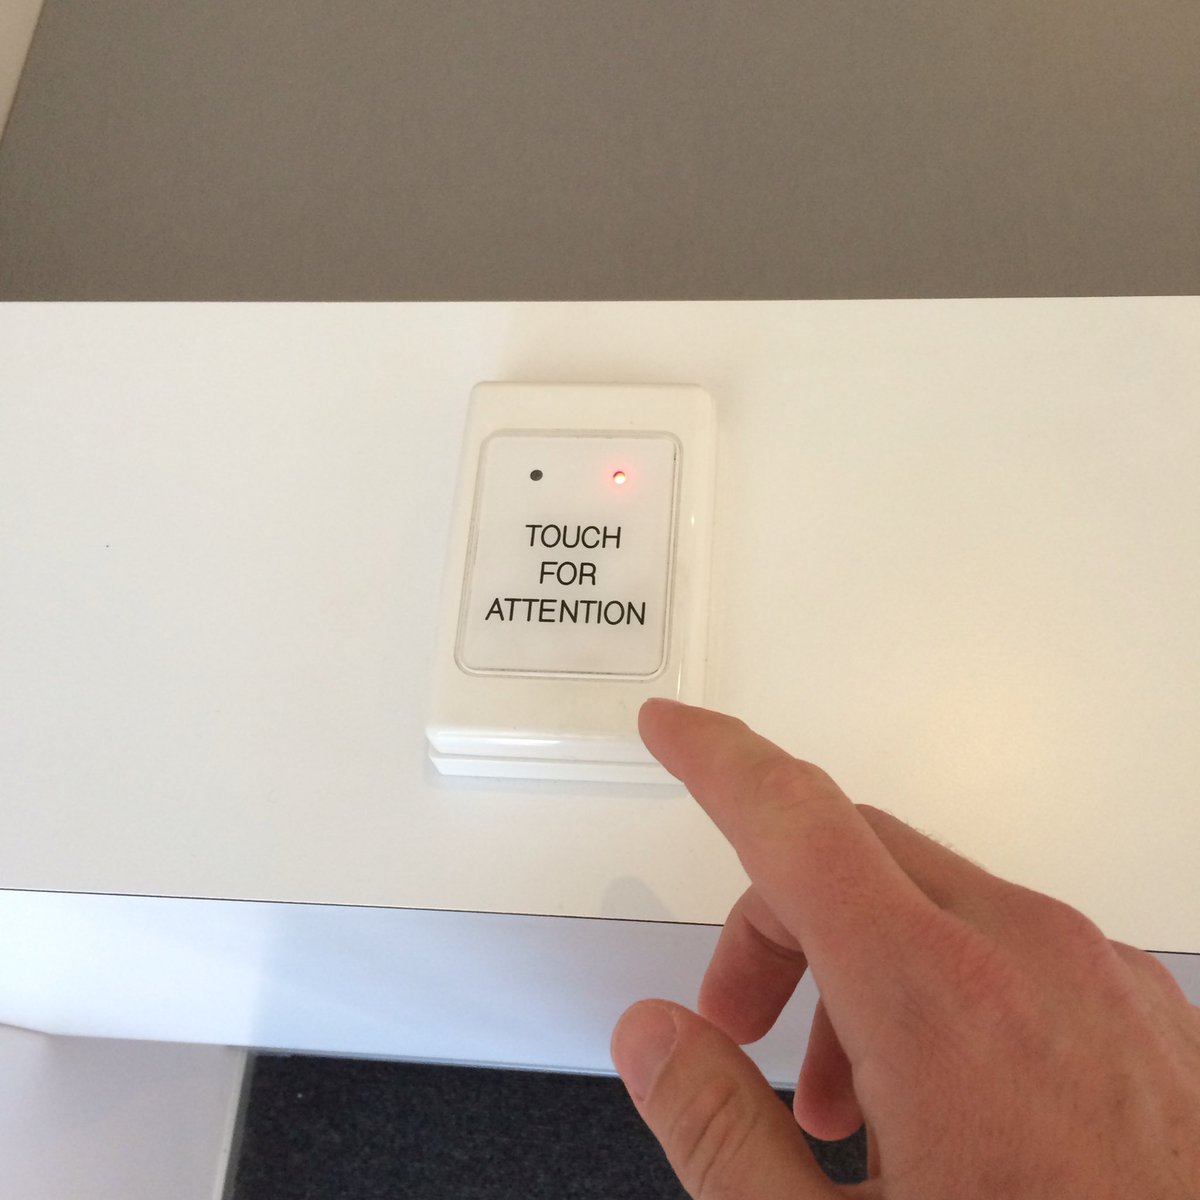 found my dream button https://t.co/BisDlnuqKU